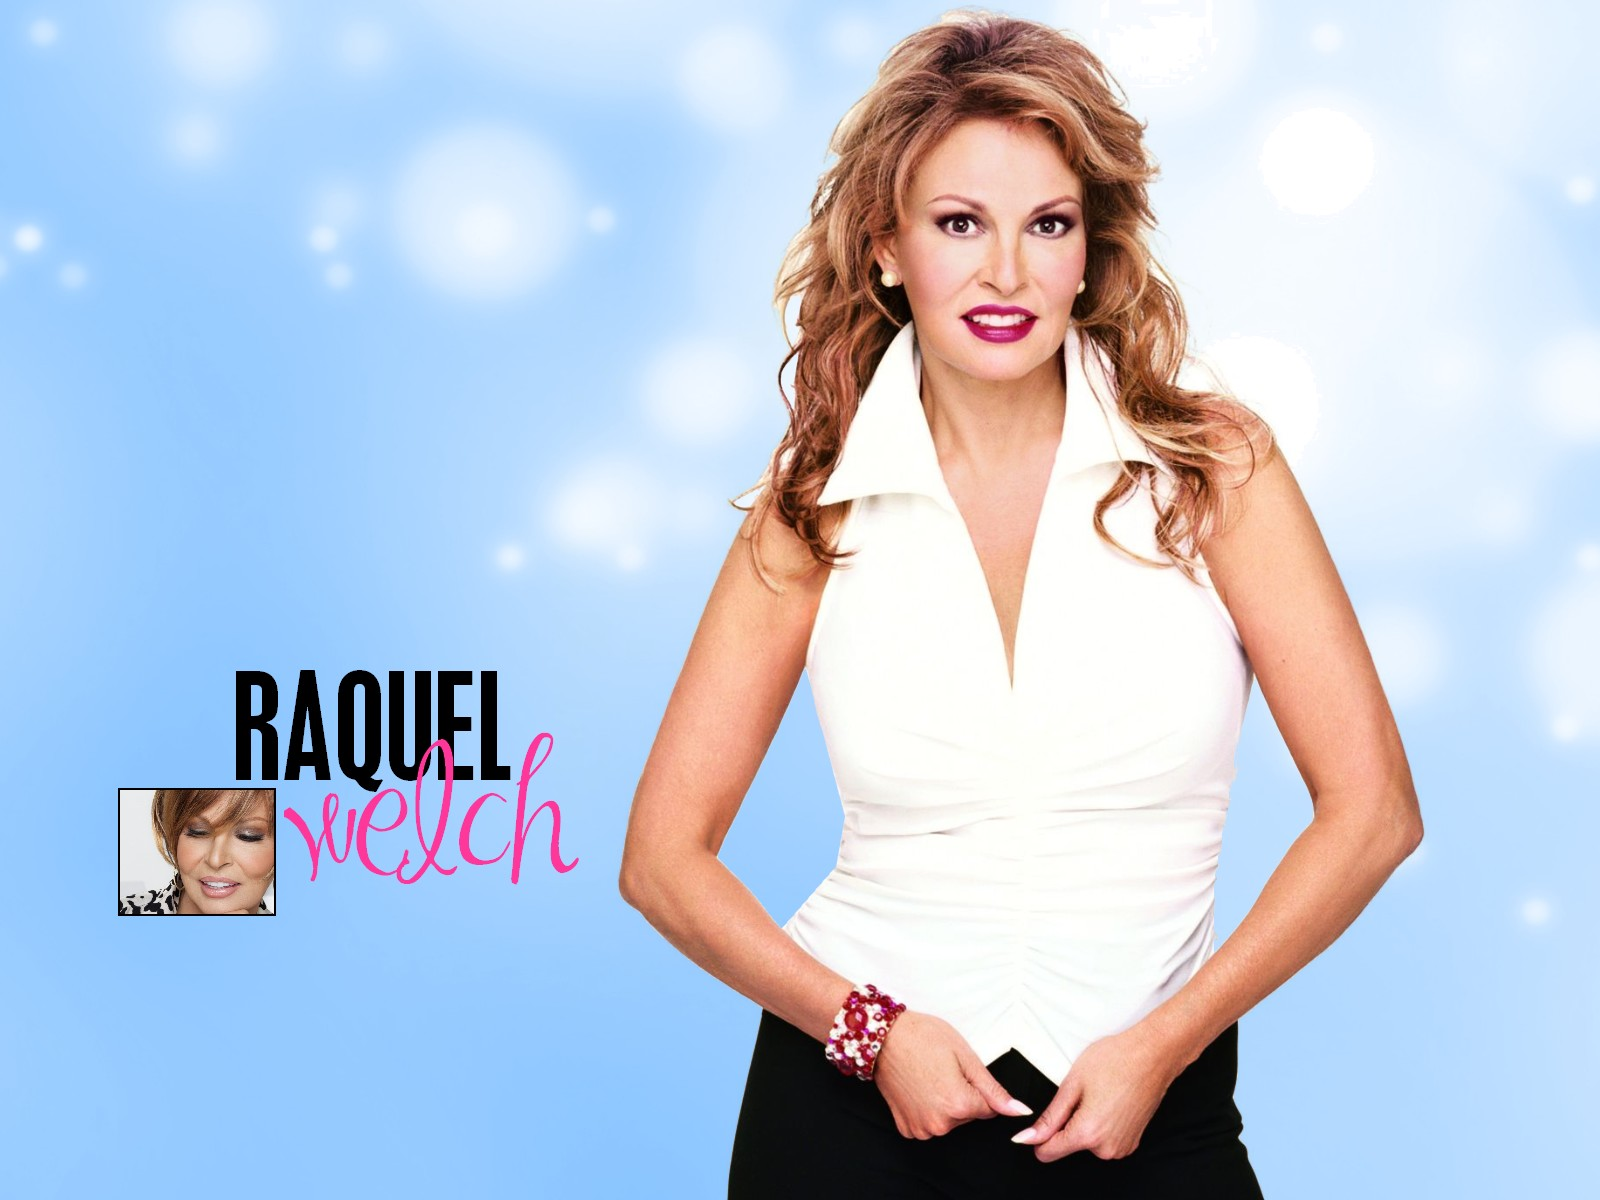 raquel wallpaper a - photo #1